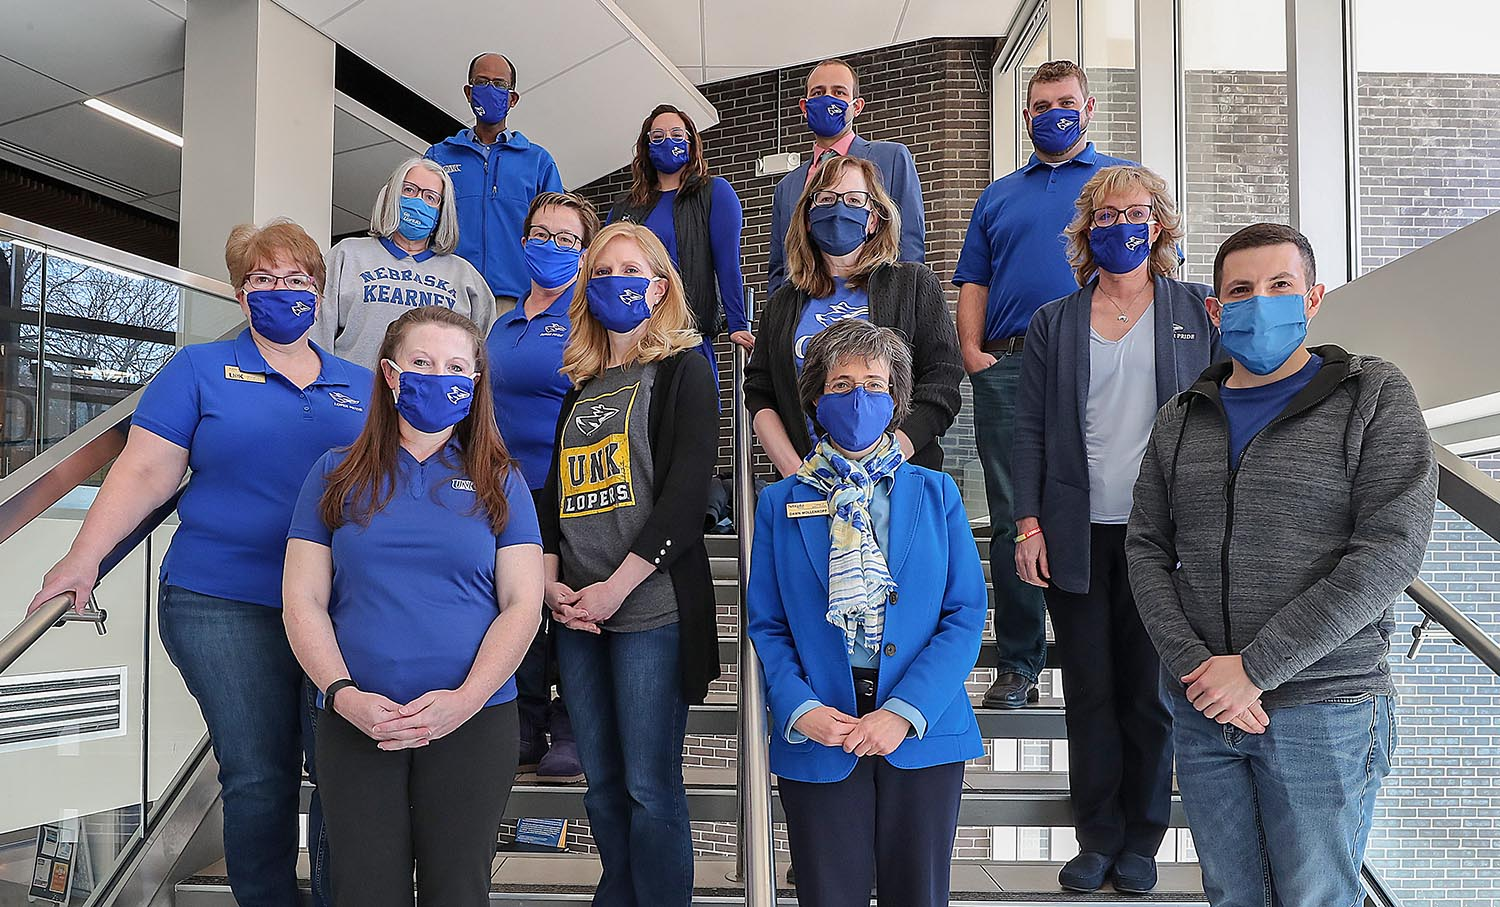 The Equity, Access and Diversity Advisory includes faculty, staff and students representing each academic college and non-academic division at UNK.